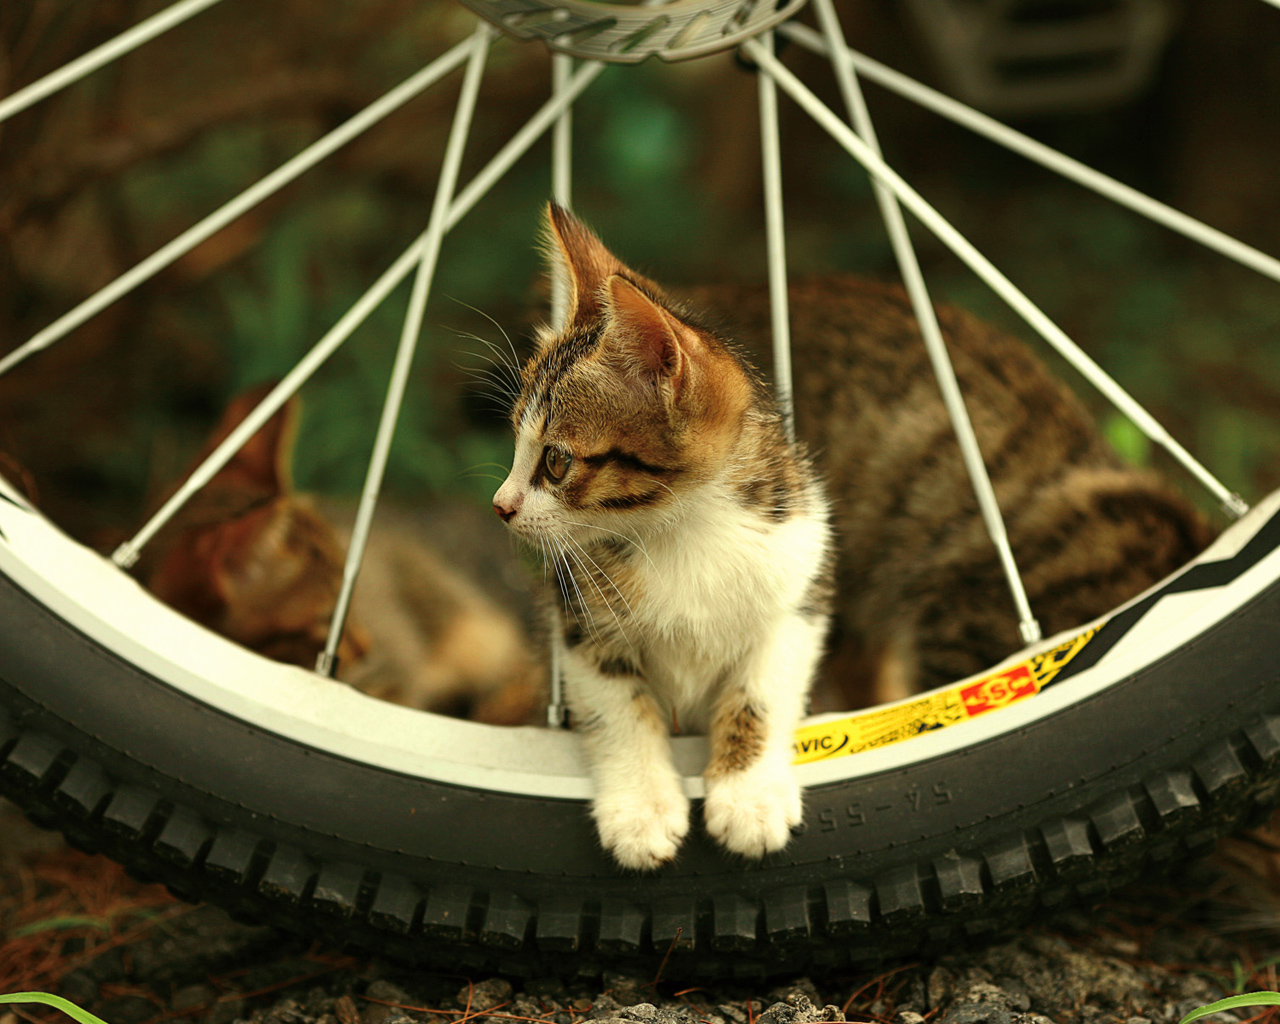 Cute kitty near a bike wheel